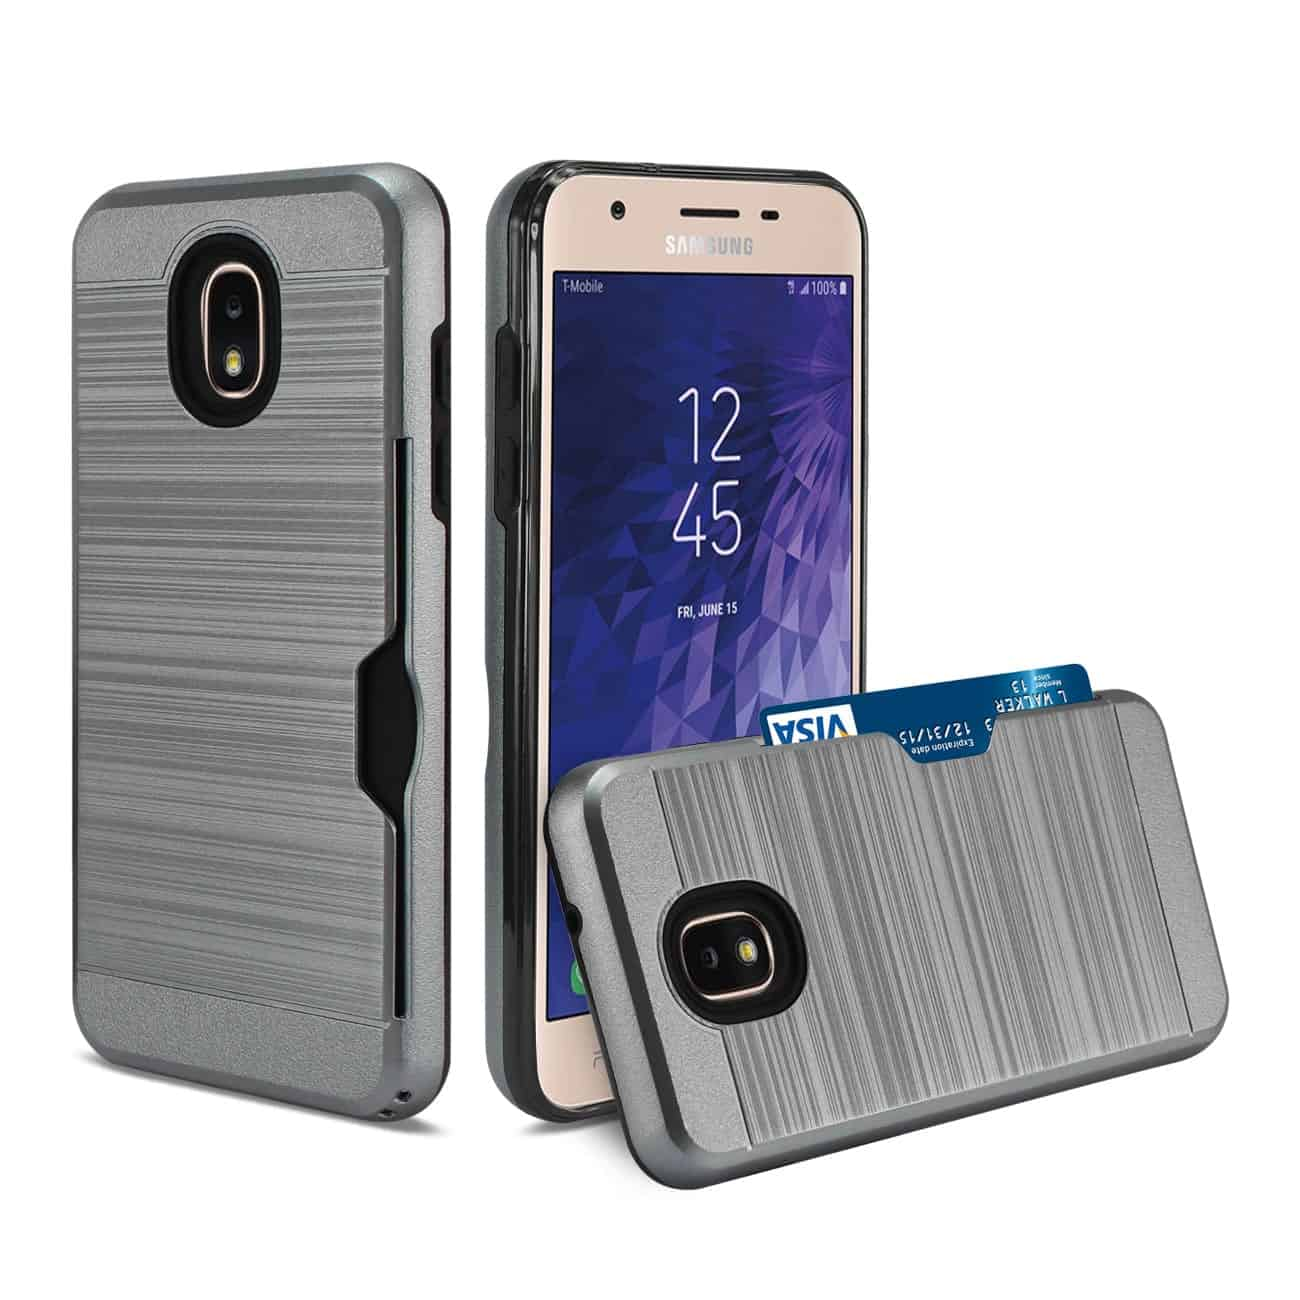 Samsung J3(2018) Slim Armor Hybrid Case With Card Holder In Gray